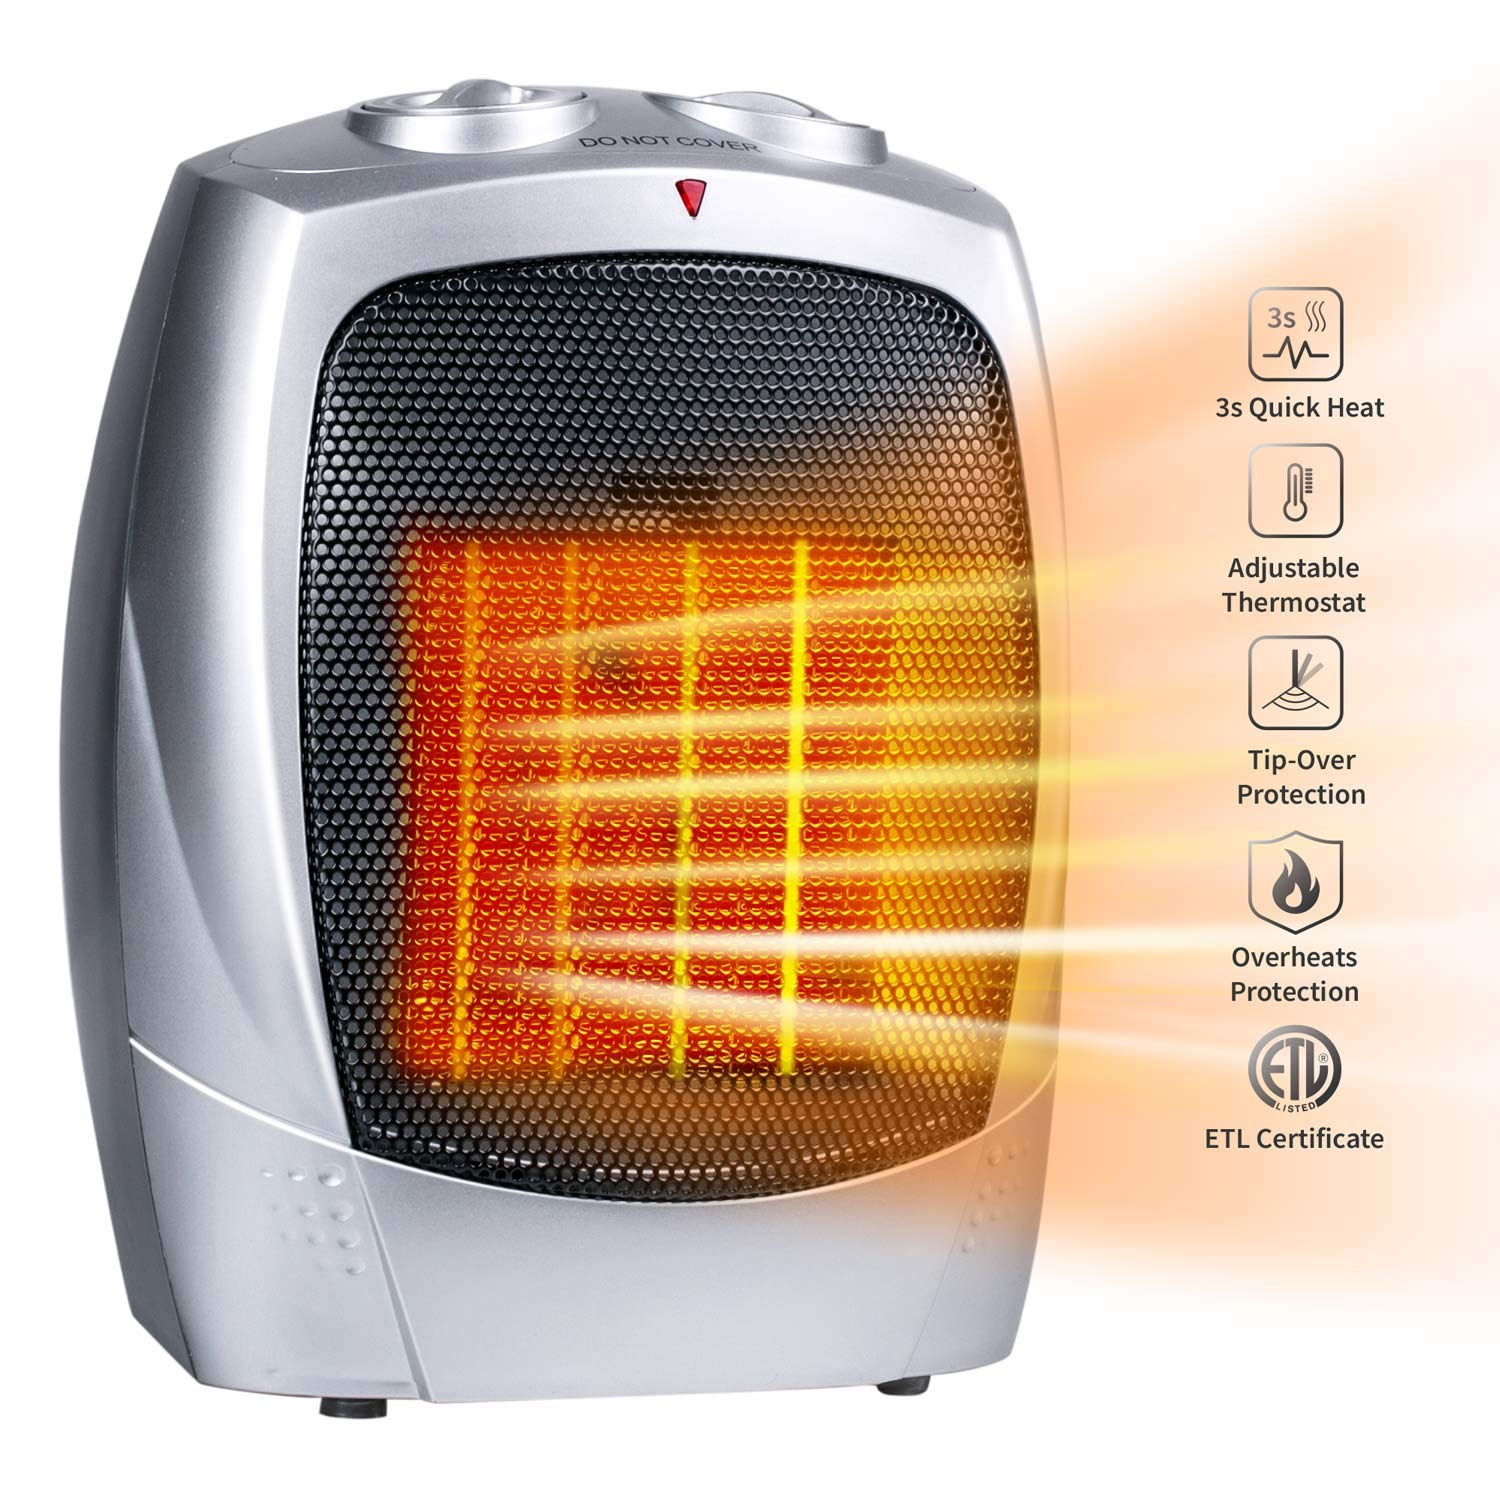 Minetom Ceramic Space Heater ETL Listed with Adjustable Thermostat, Portable Personal Heater with Over-Heat Tip-Over Protection for Home and Office, 750W 1500W